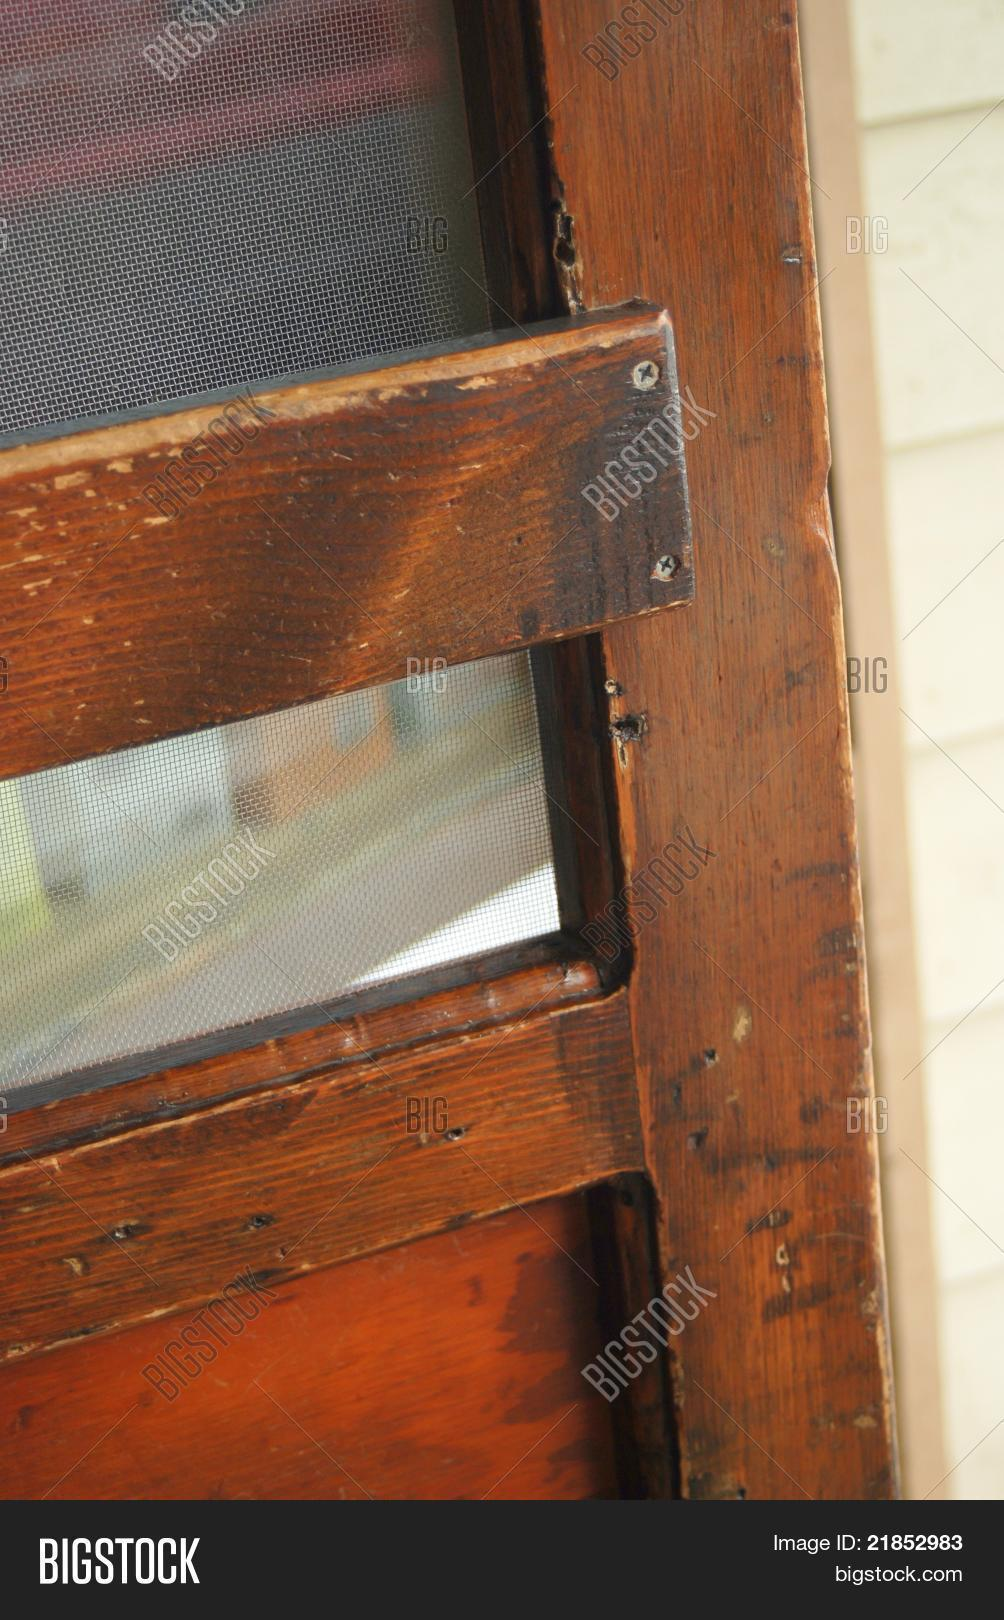 Old fashioned wooden screen door image photo bigstock